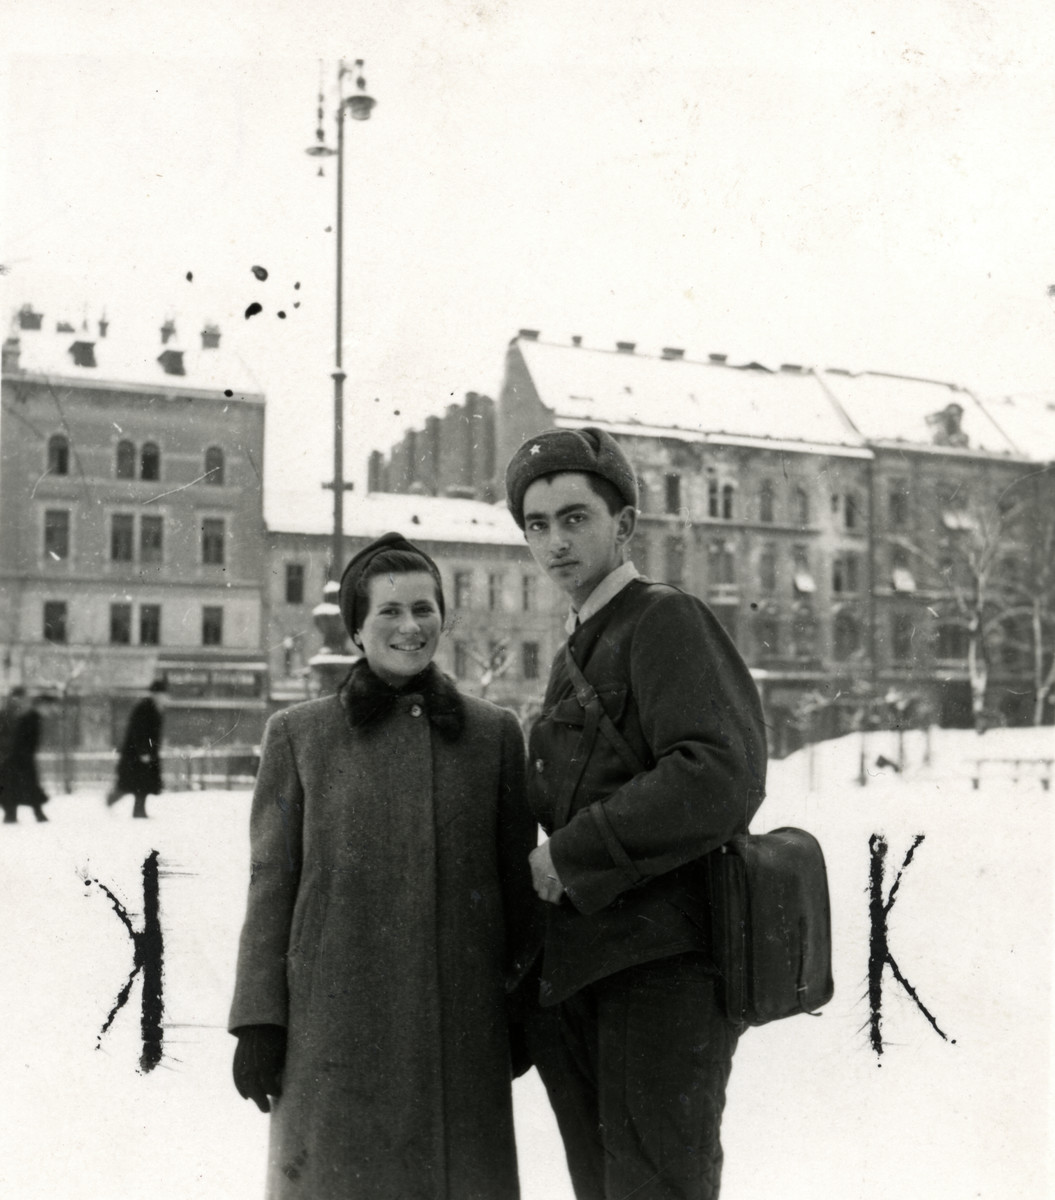 Tzippora Teichman poses with Ossie, a Soviet Jewish soldier, following liberation.